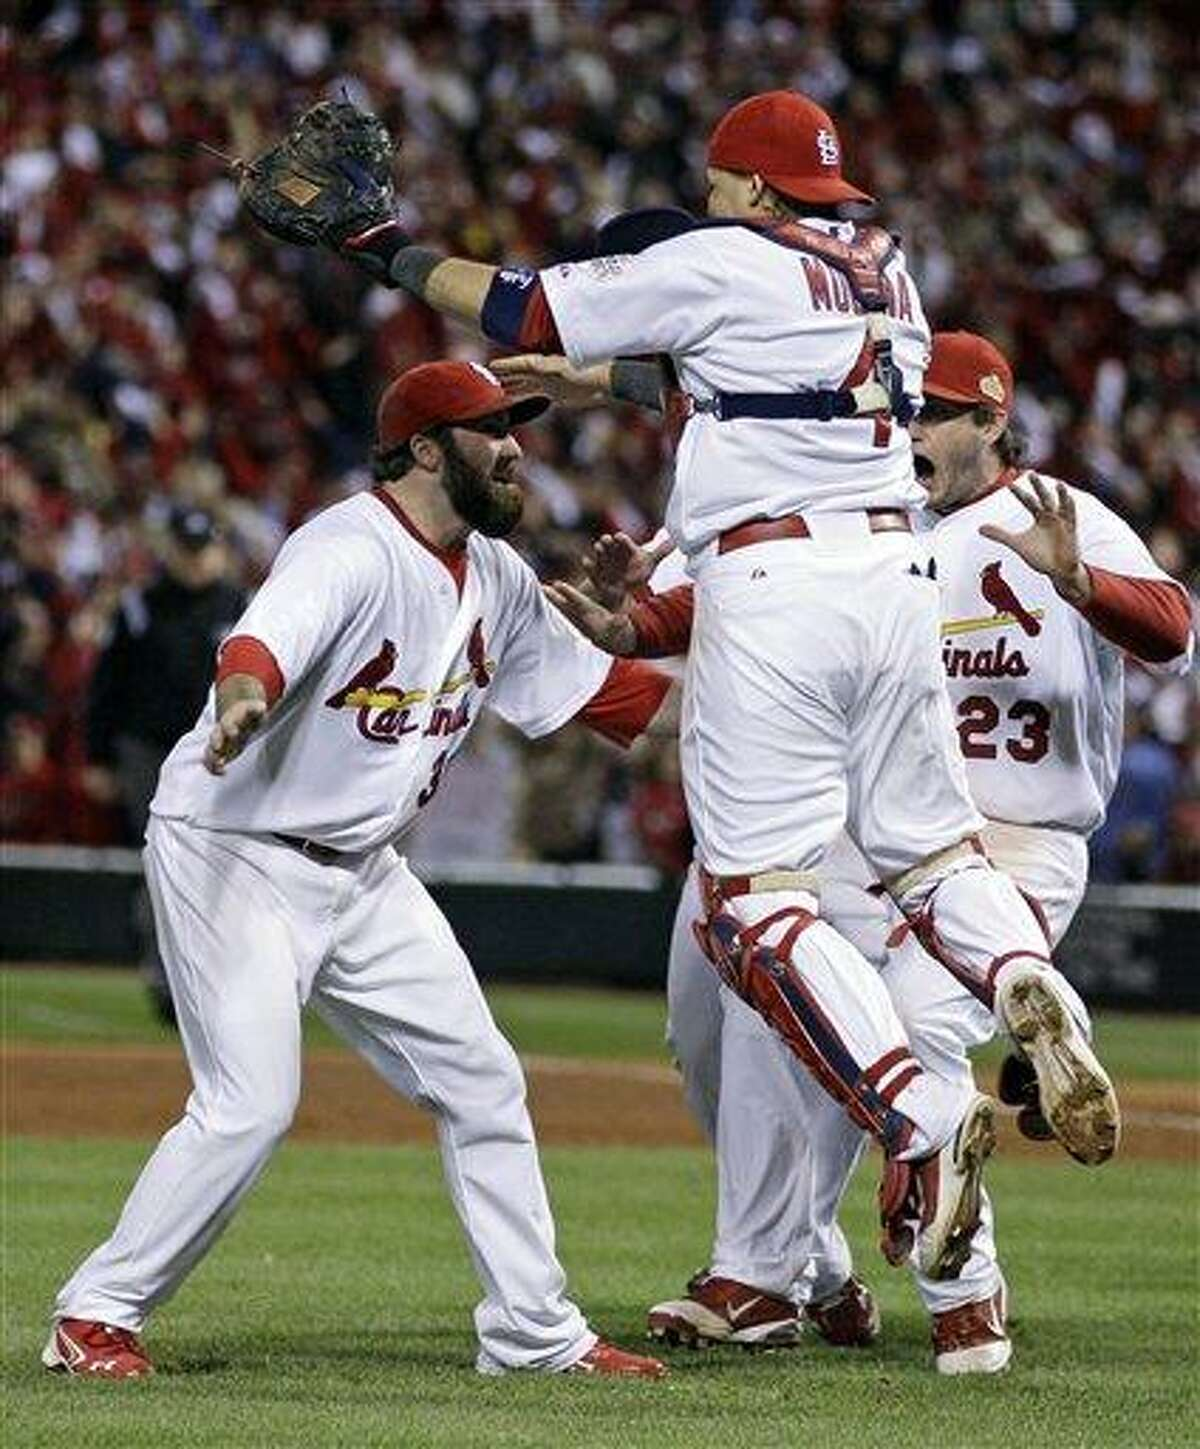 St. Louis Cardinals catcher Yadier Molina leaps in the arms of Jason Motte after Texas Rangers' David Murphy flies out to end Game 7 of baseball's World Series Friday, Oct. 28, 2011, in St. Louis. The Cardinals won 6-2 to win the series. (AP Photo/Matt Slocum)